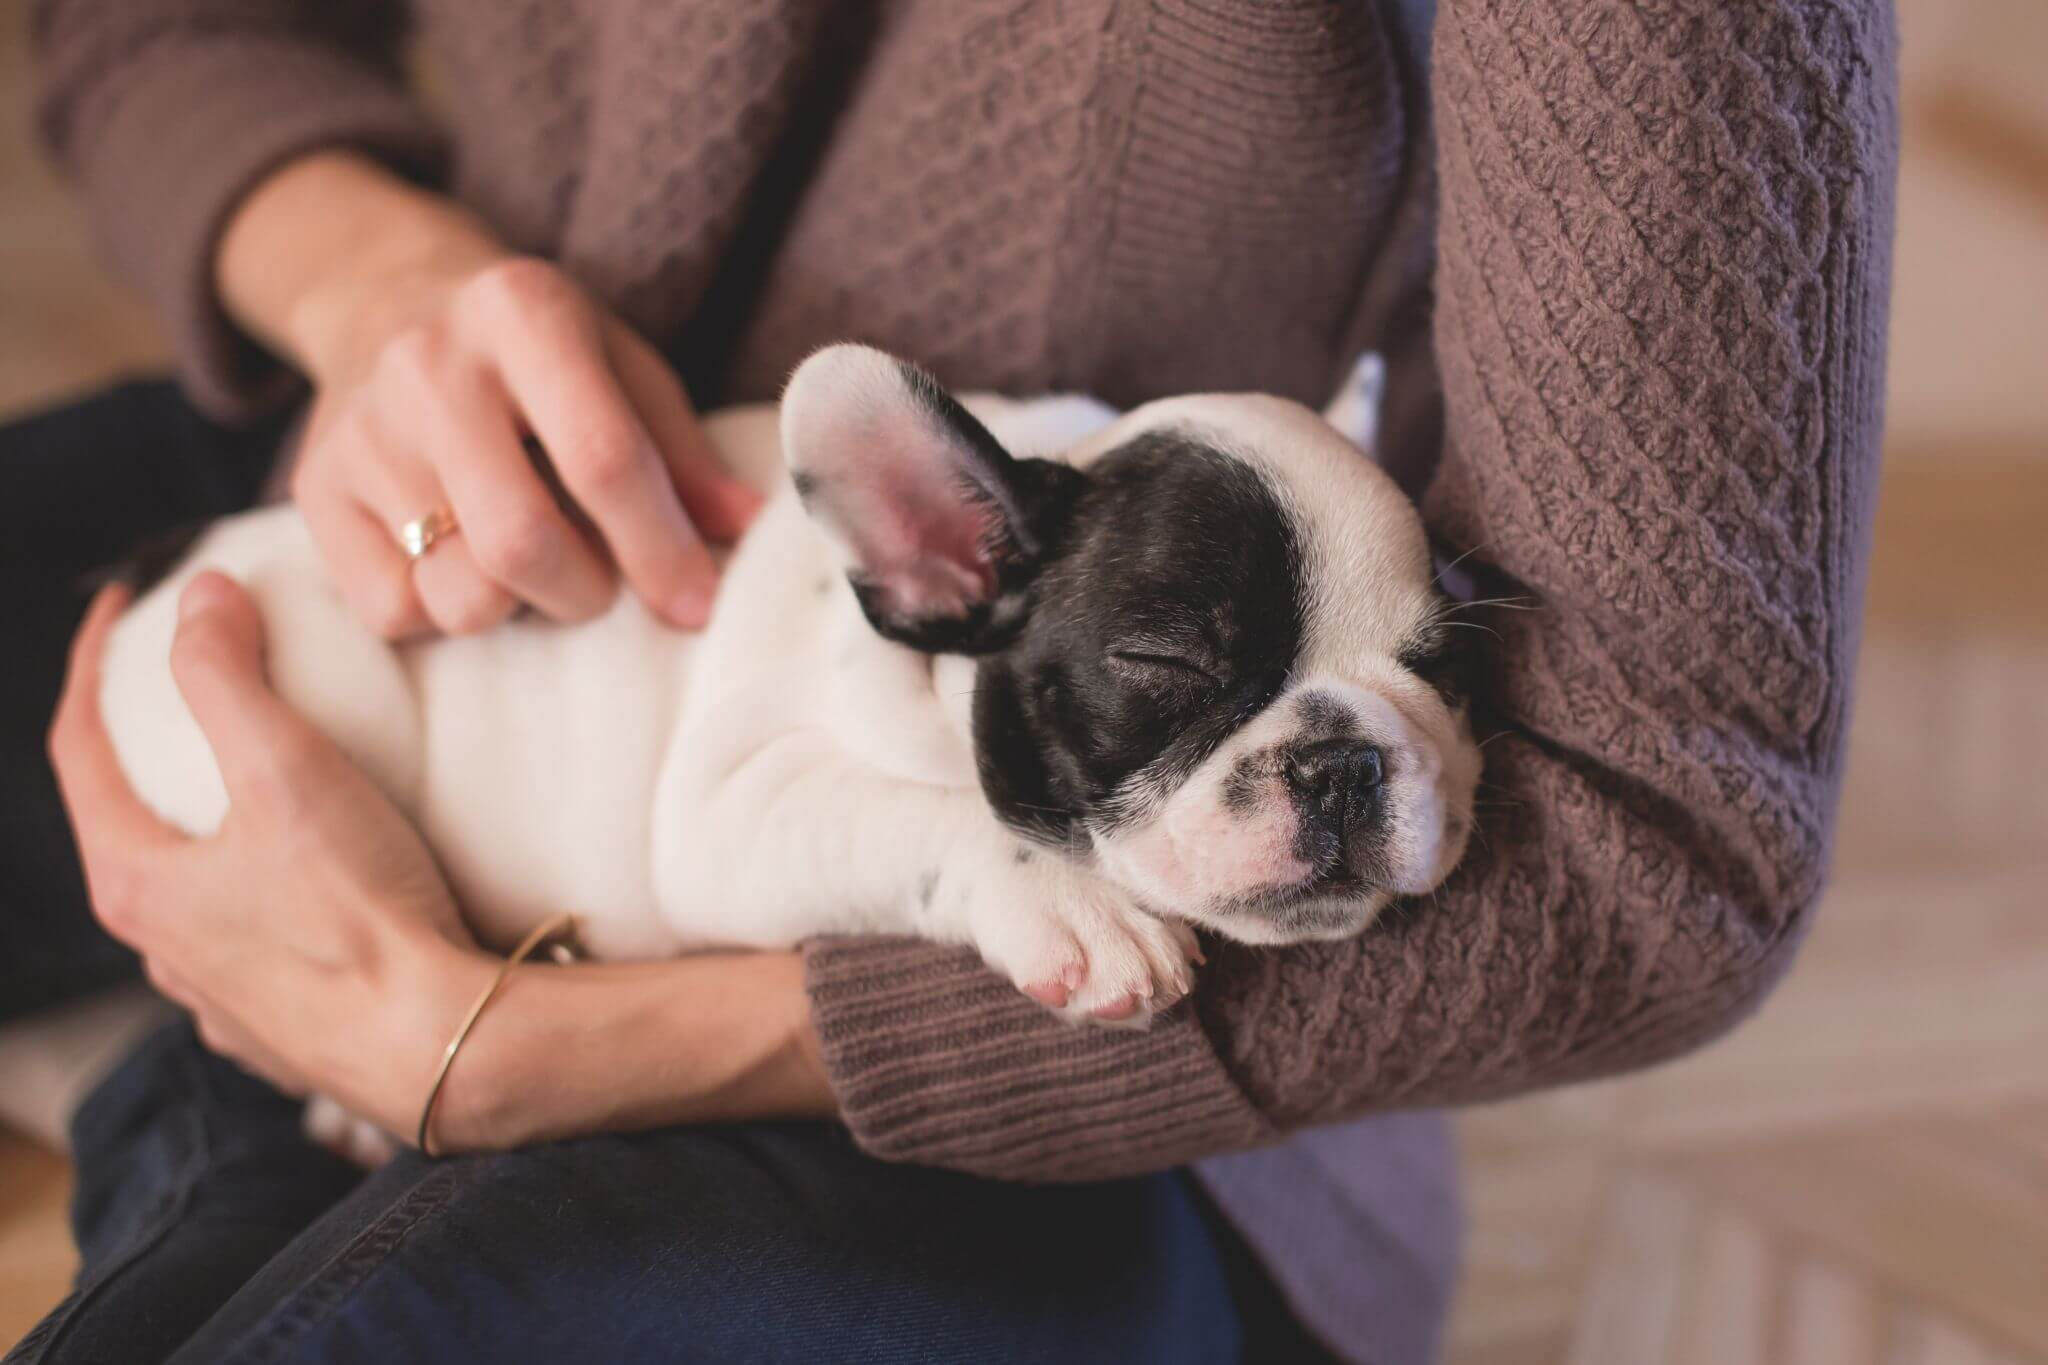 pet insurance is important to avoid any nasty financial shocks - puppy snuggling in woman's arms